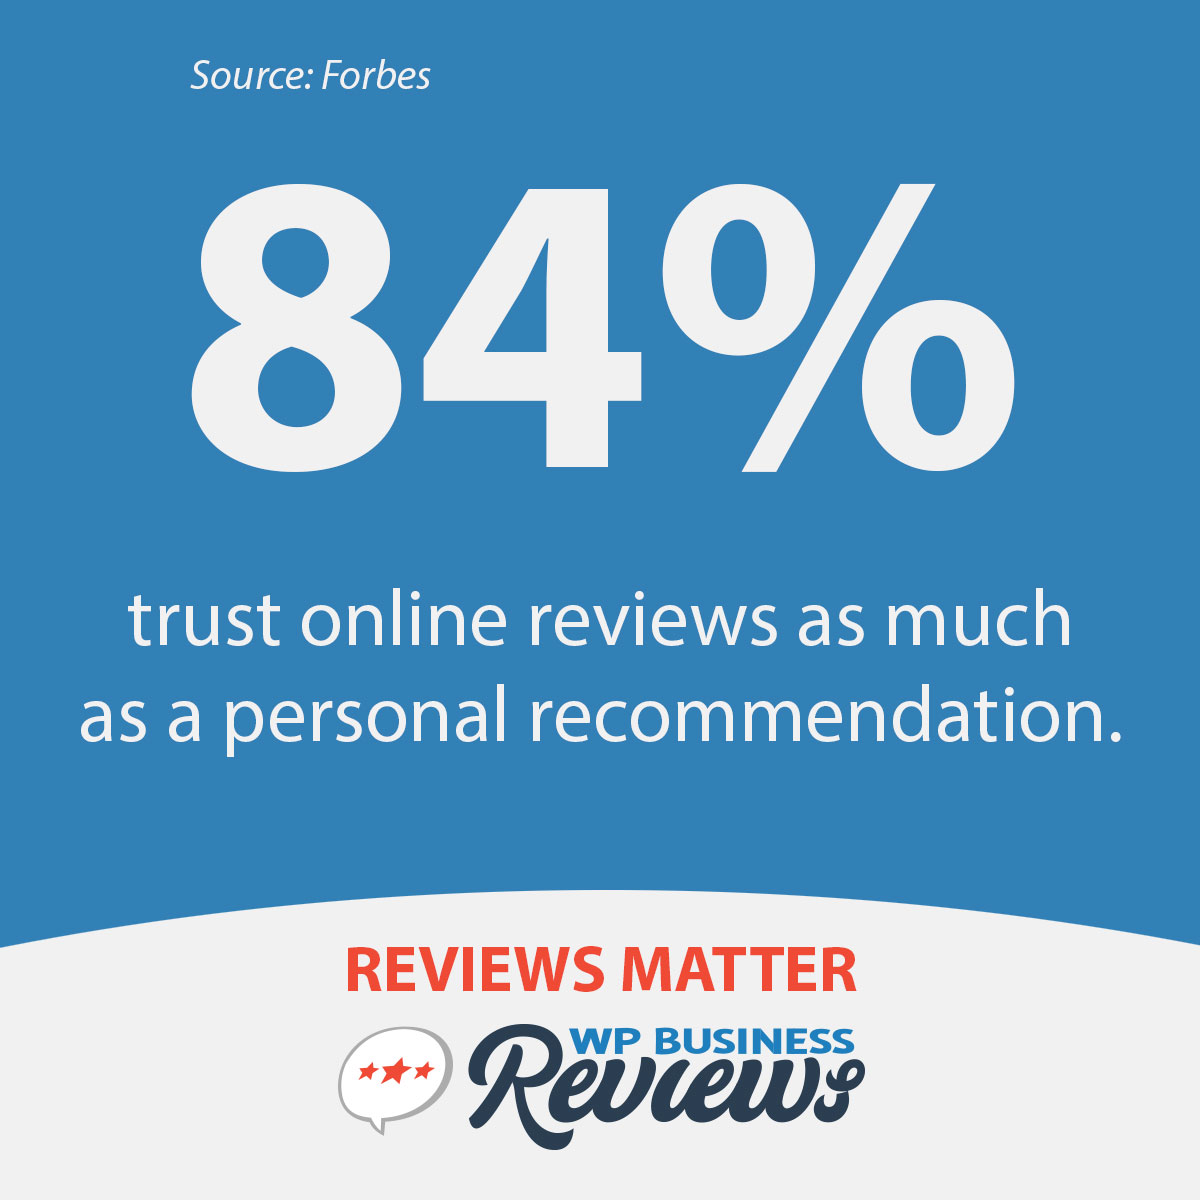 Forbes says that 84% of people trust online reviews as much as a personal recommendation.